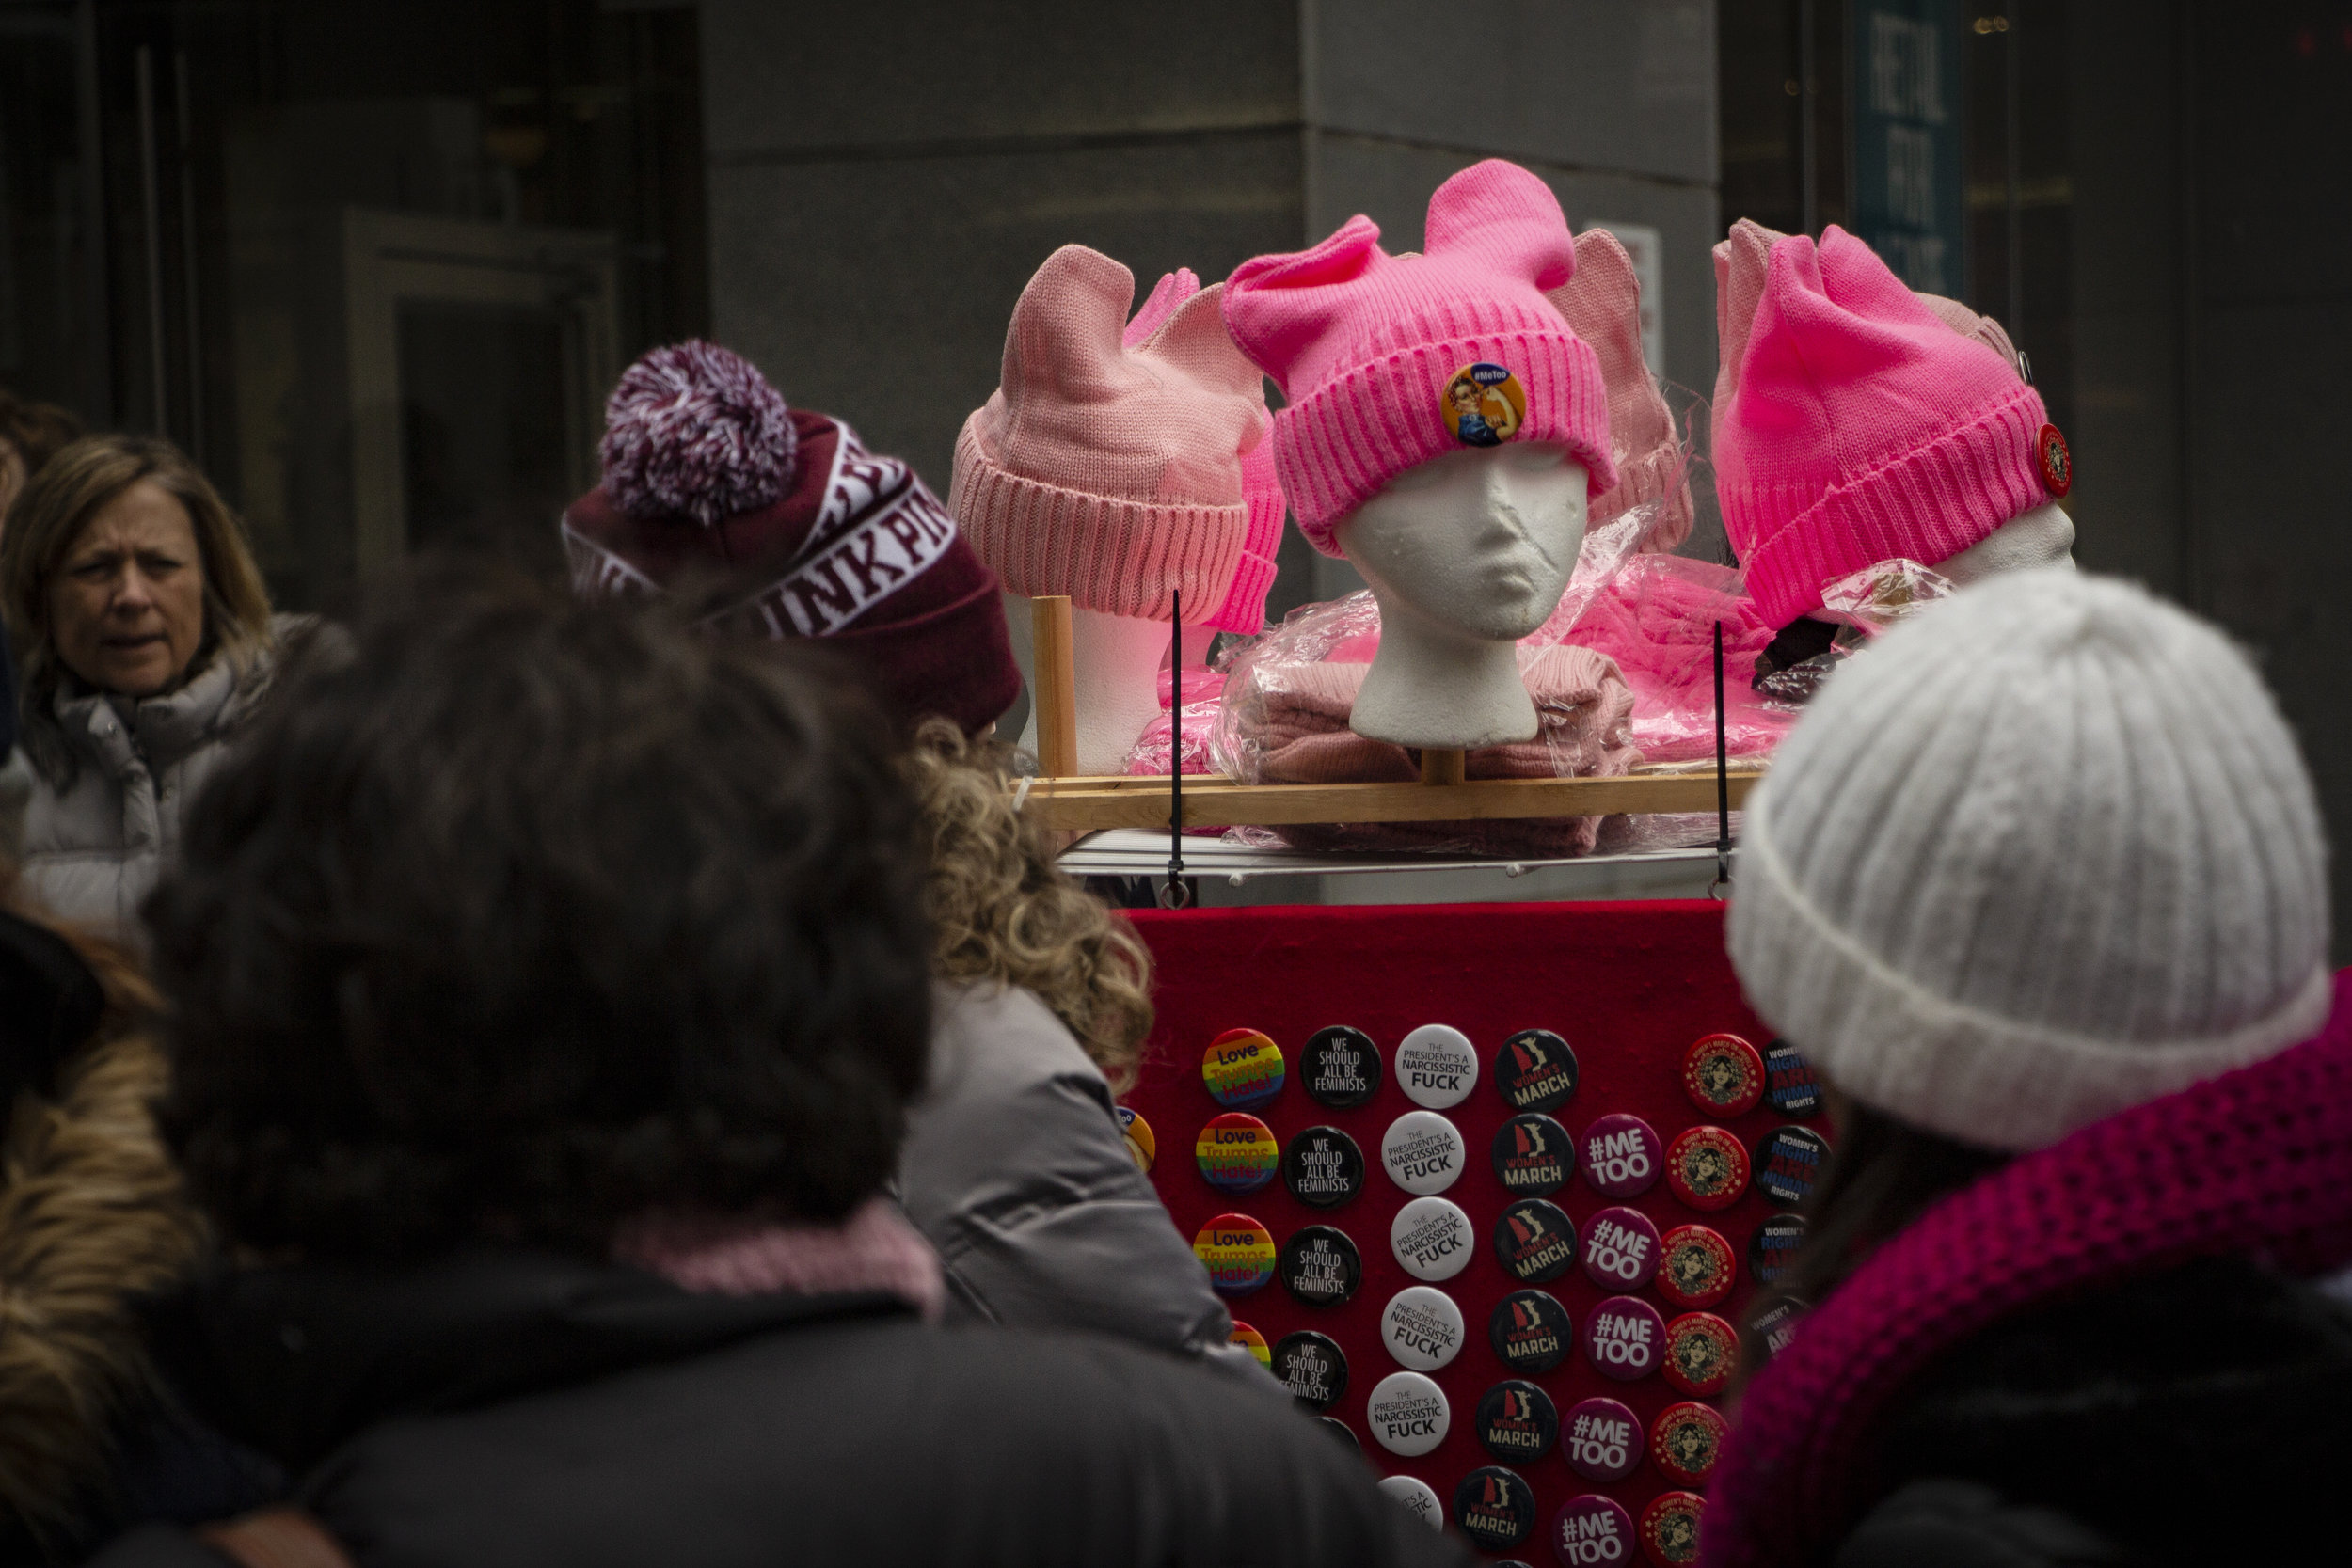 A stand of Women's March gear on 6th Avenue in NYC. || Photo credit to Bernadette Berdychowski